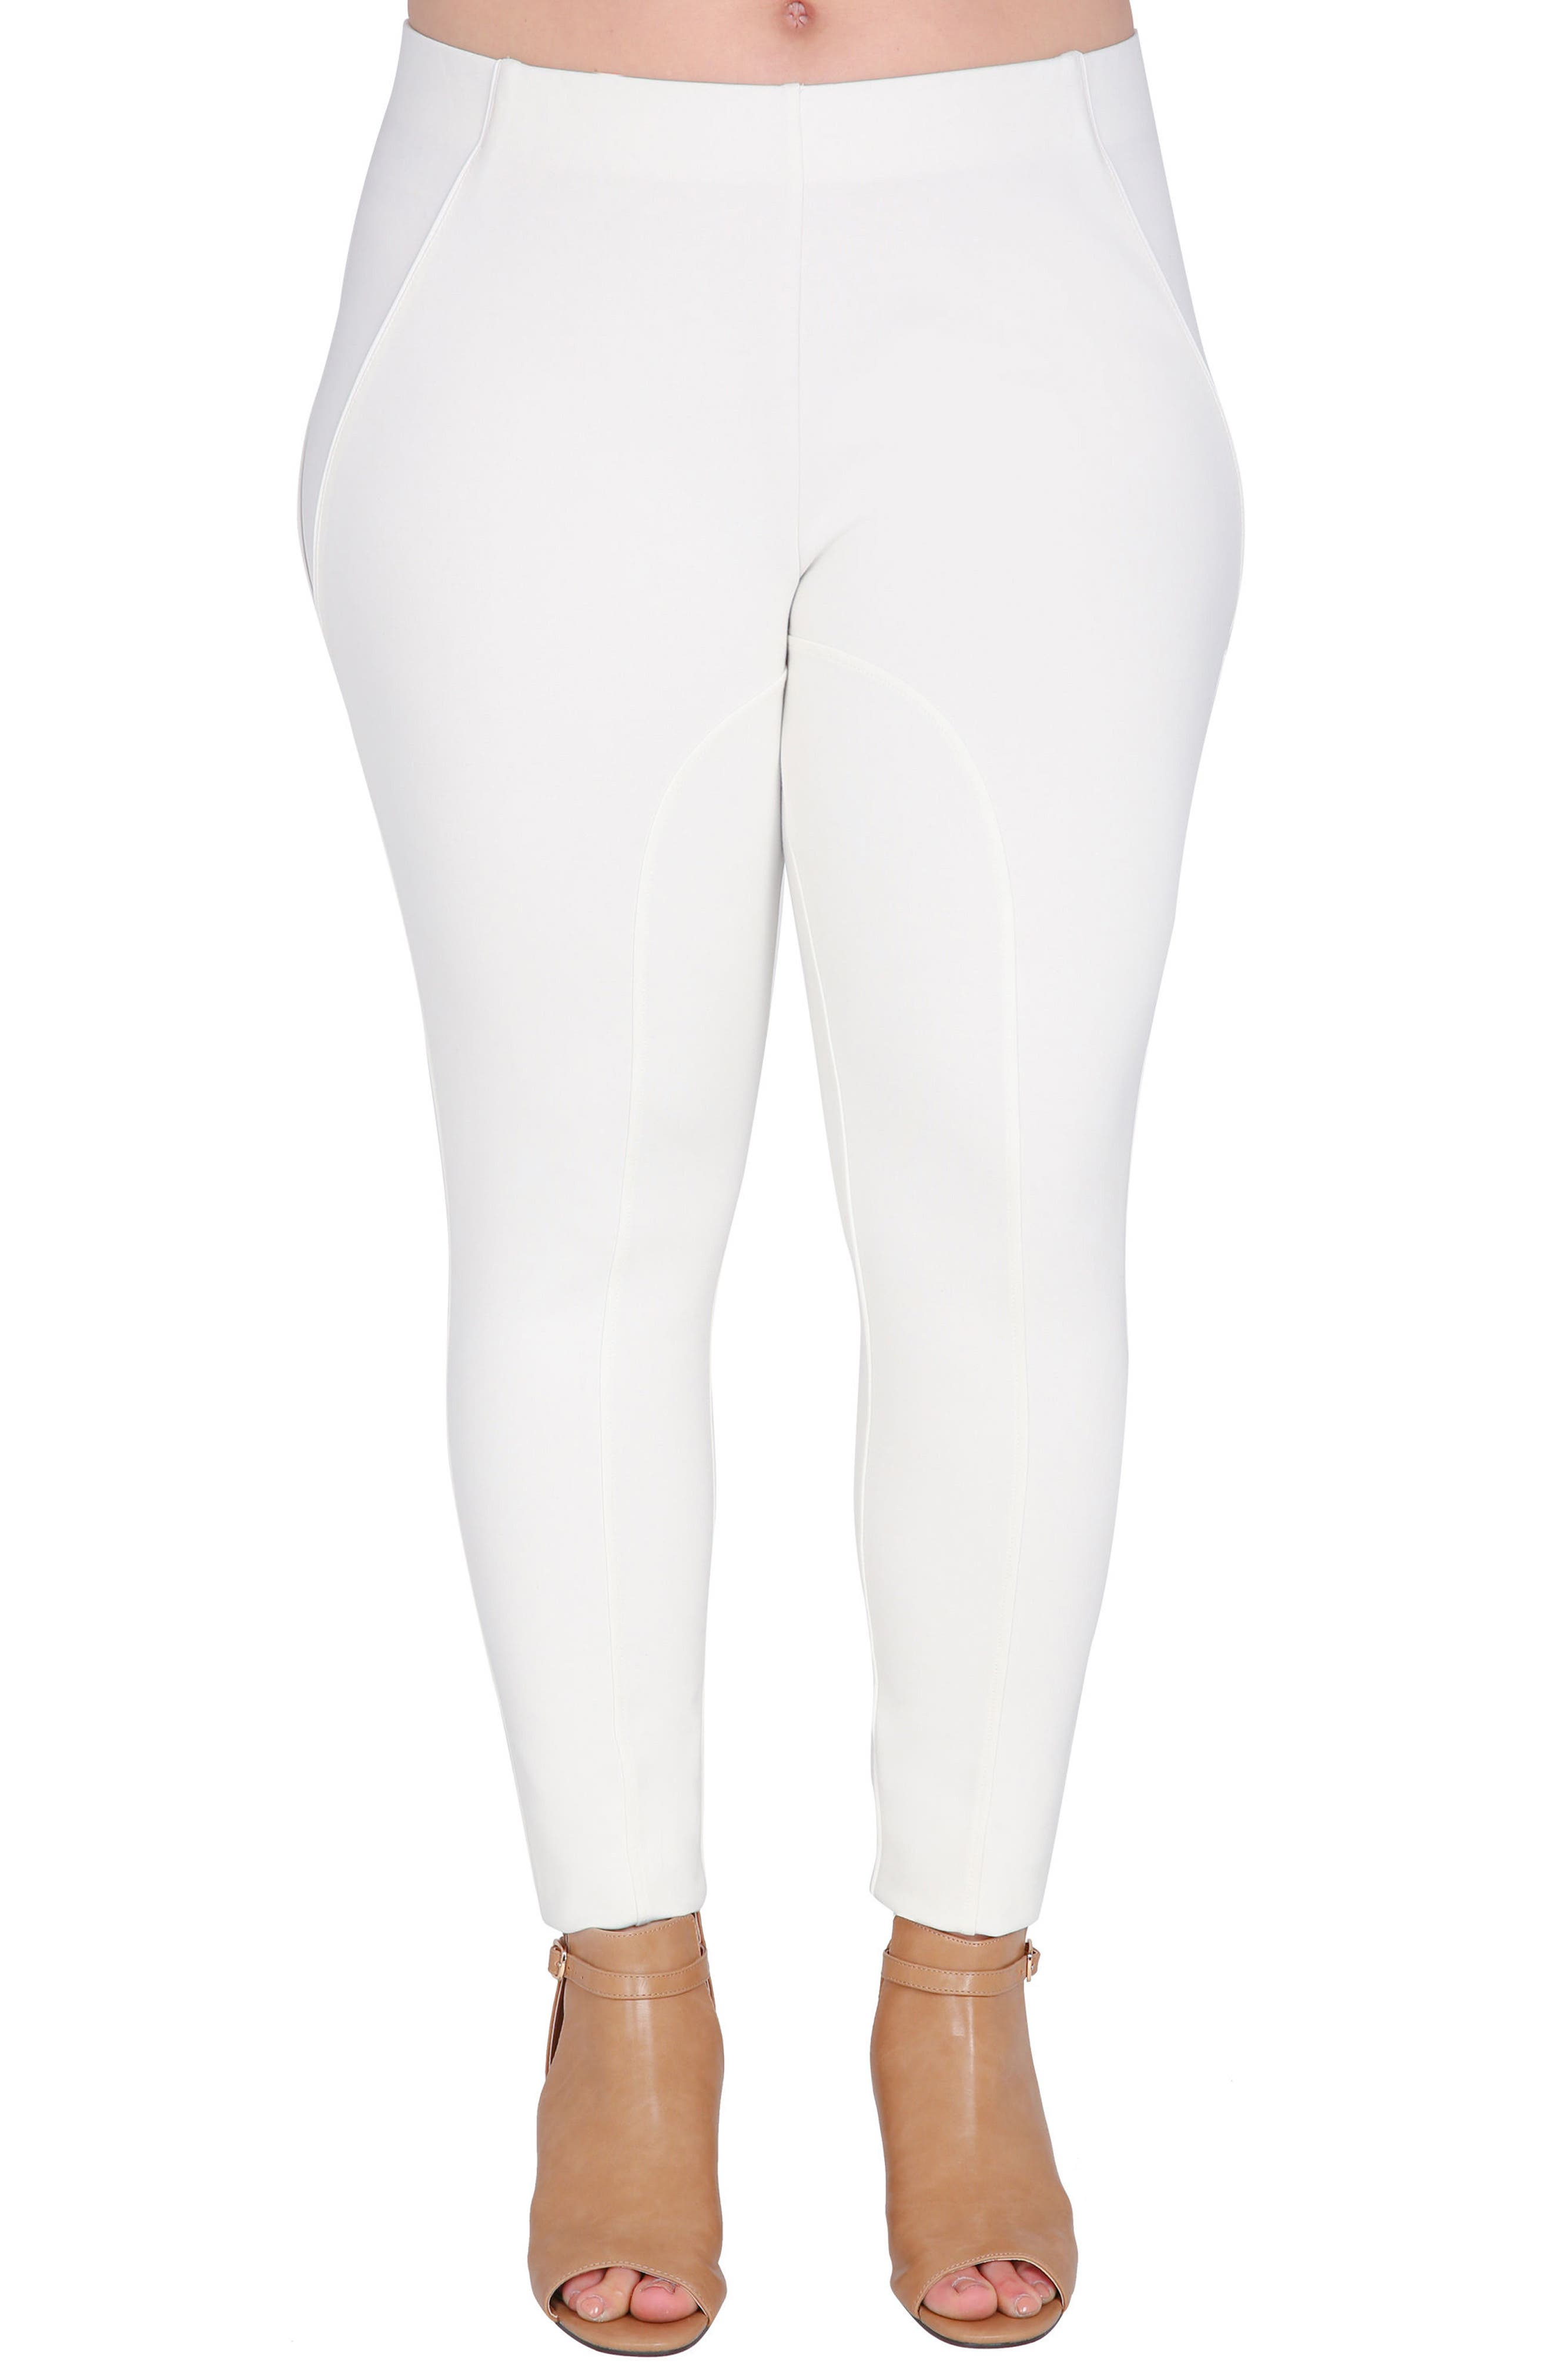 Plus Size Standards & Practices Belinda High Waist Ponte Leggings